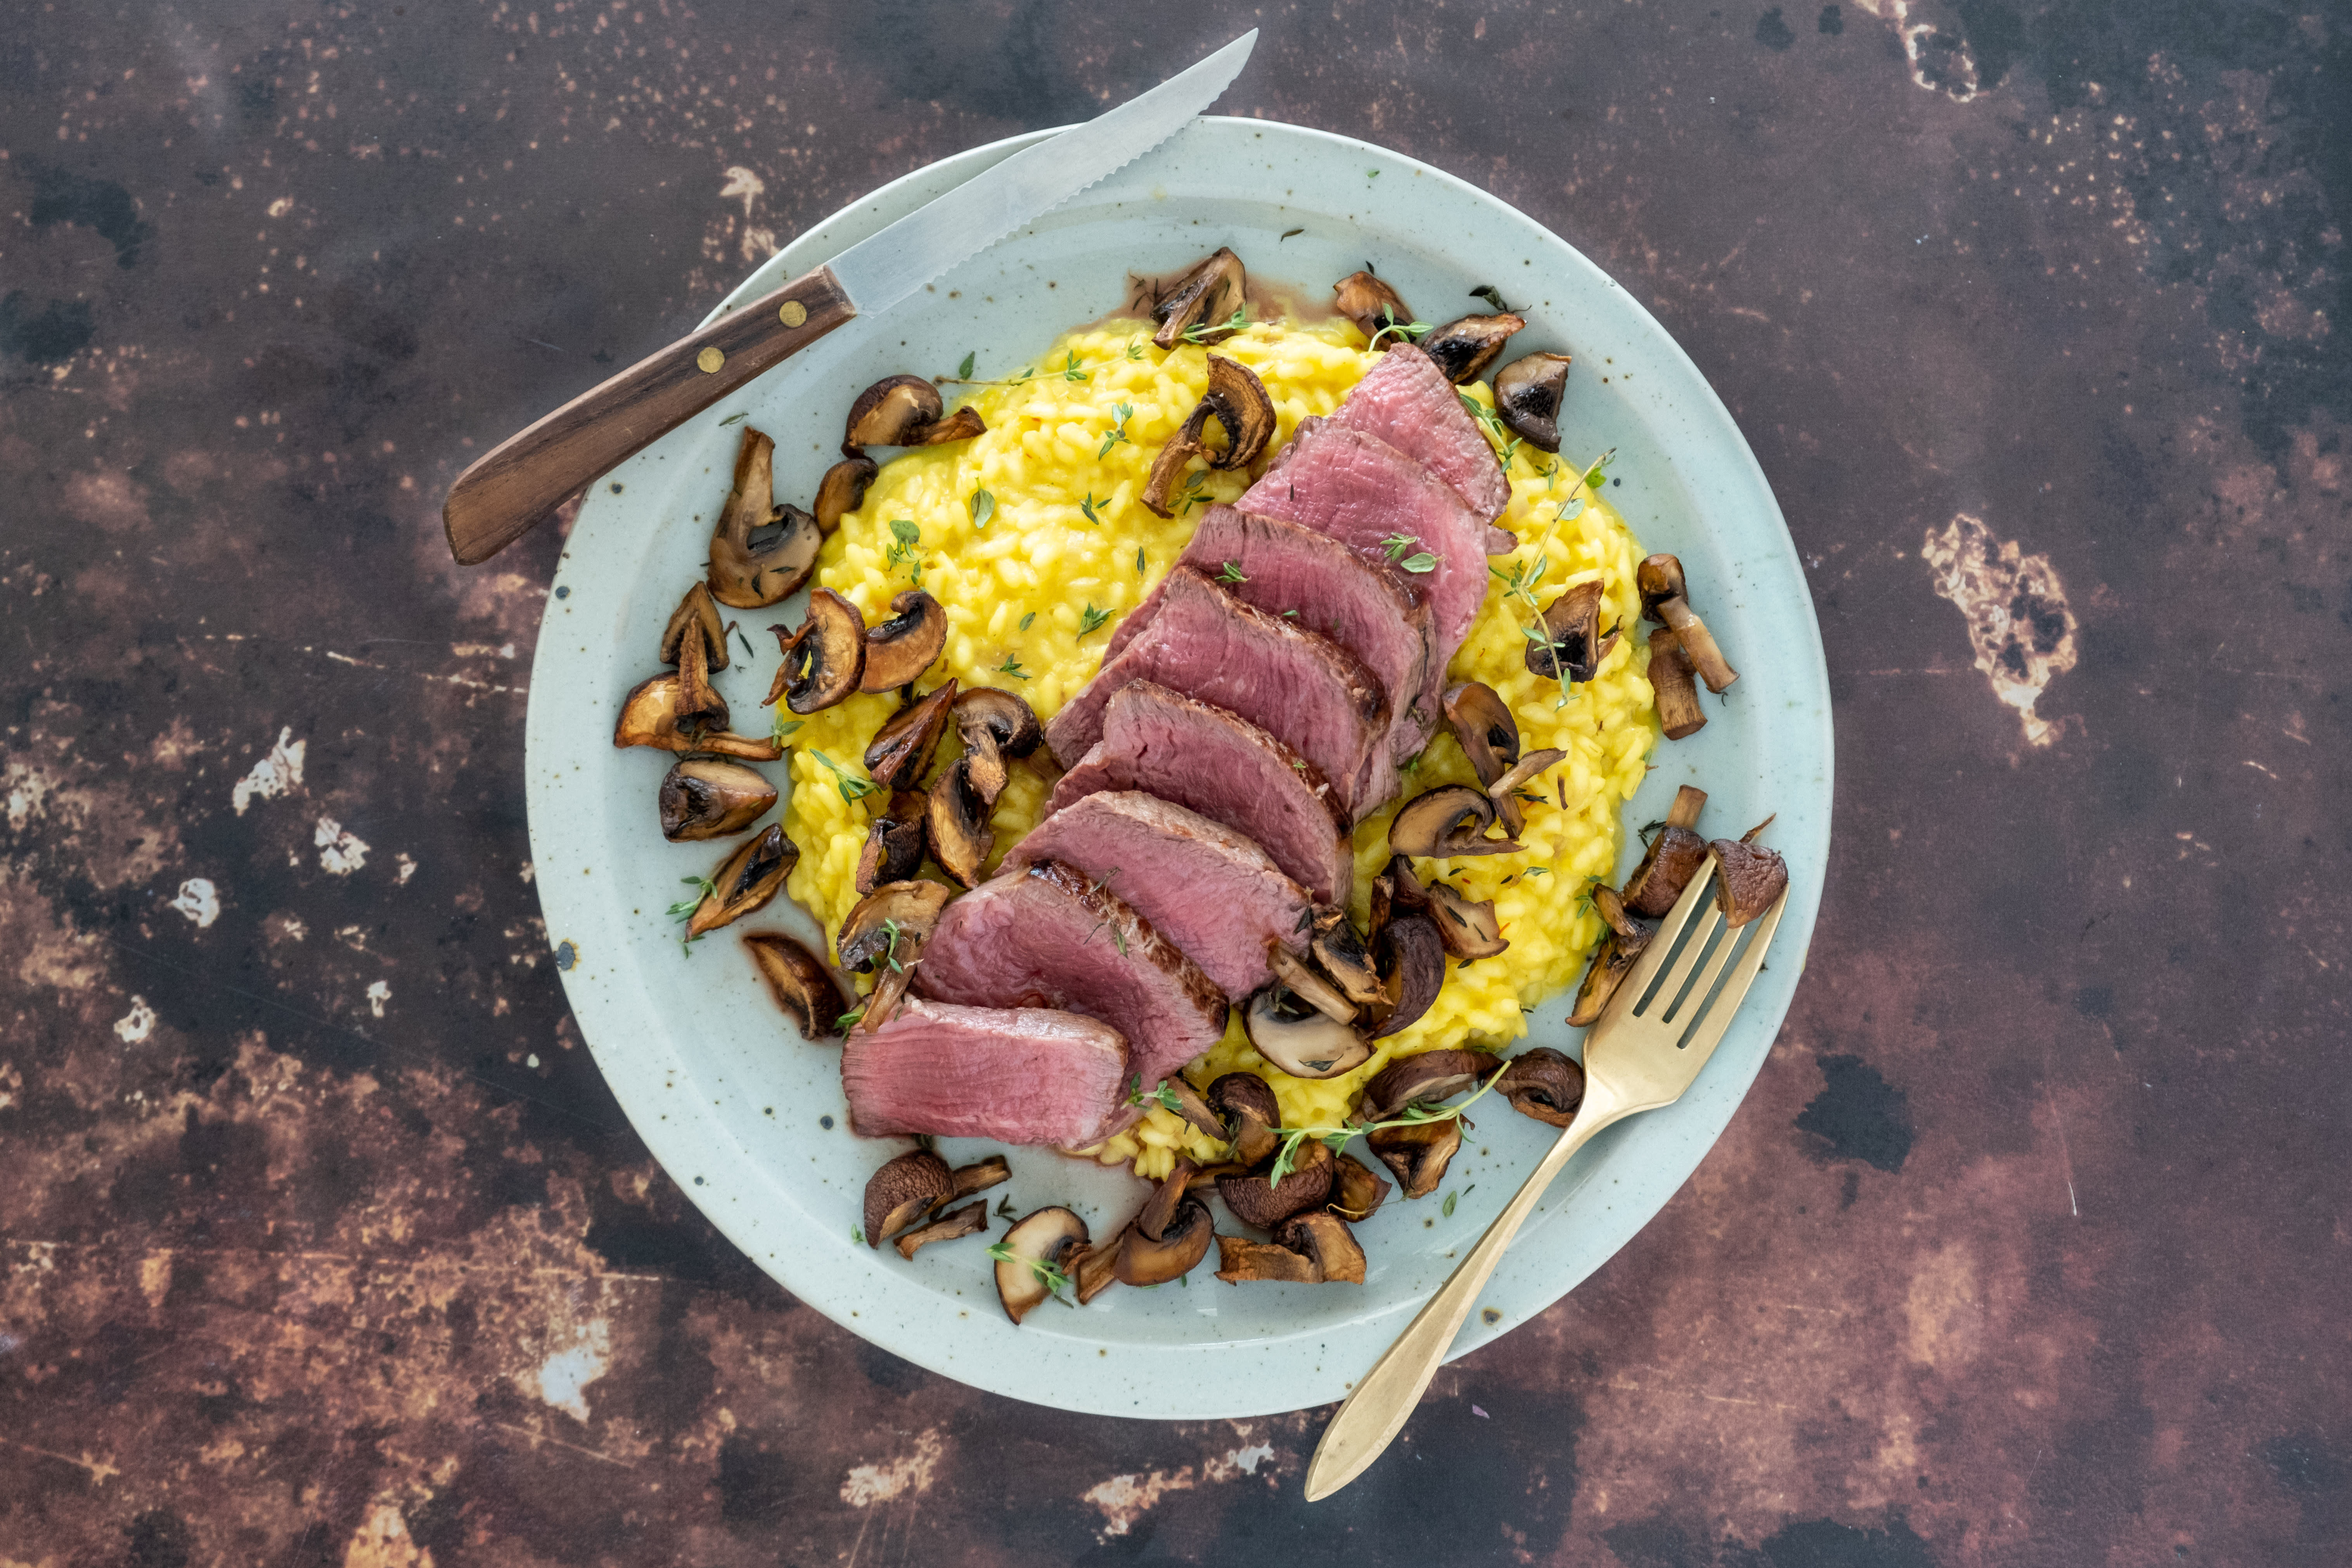 Fillet Steak with Saffron Risotto and Mushrooms